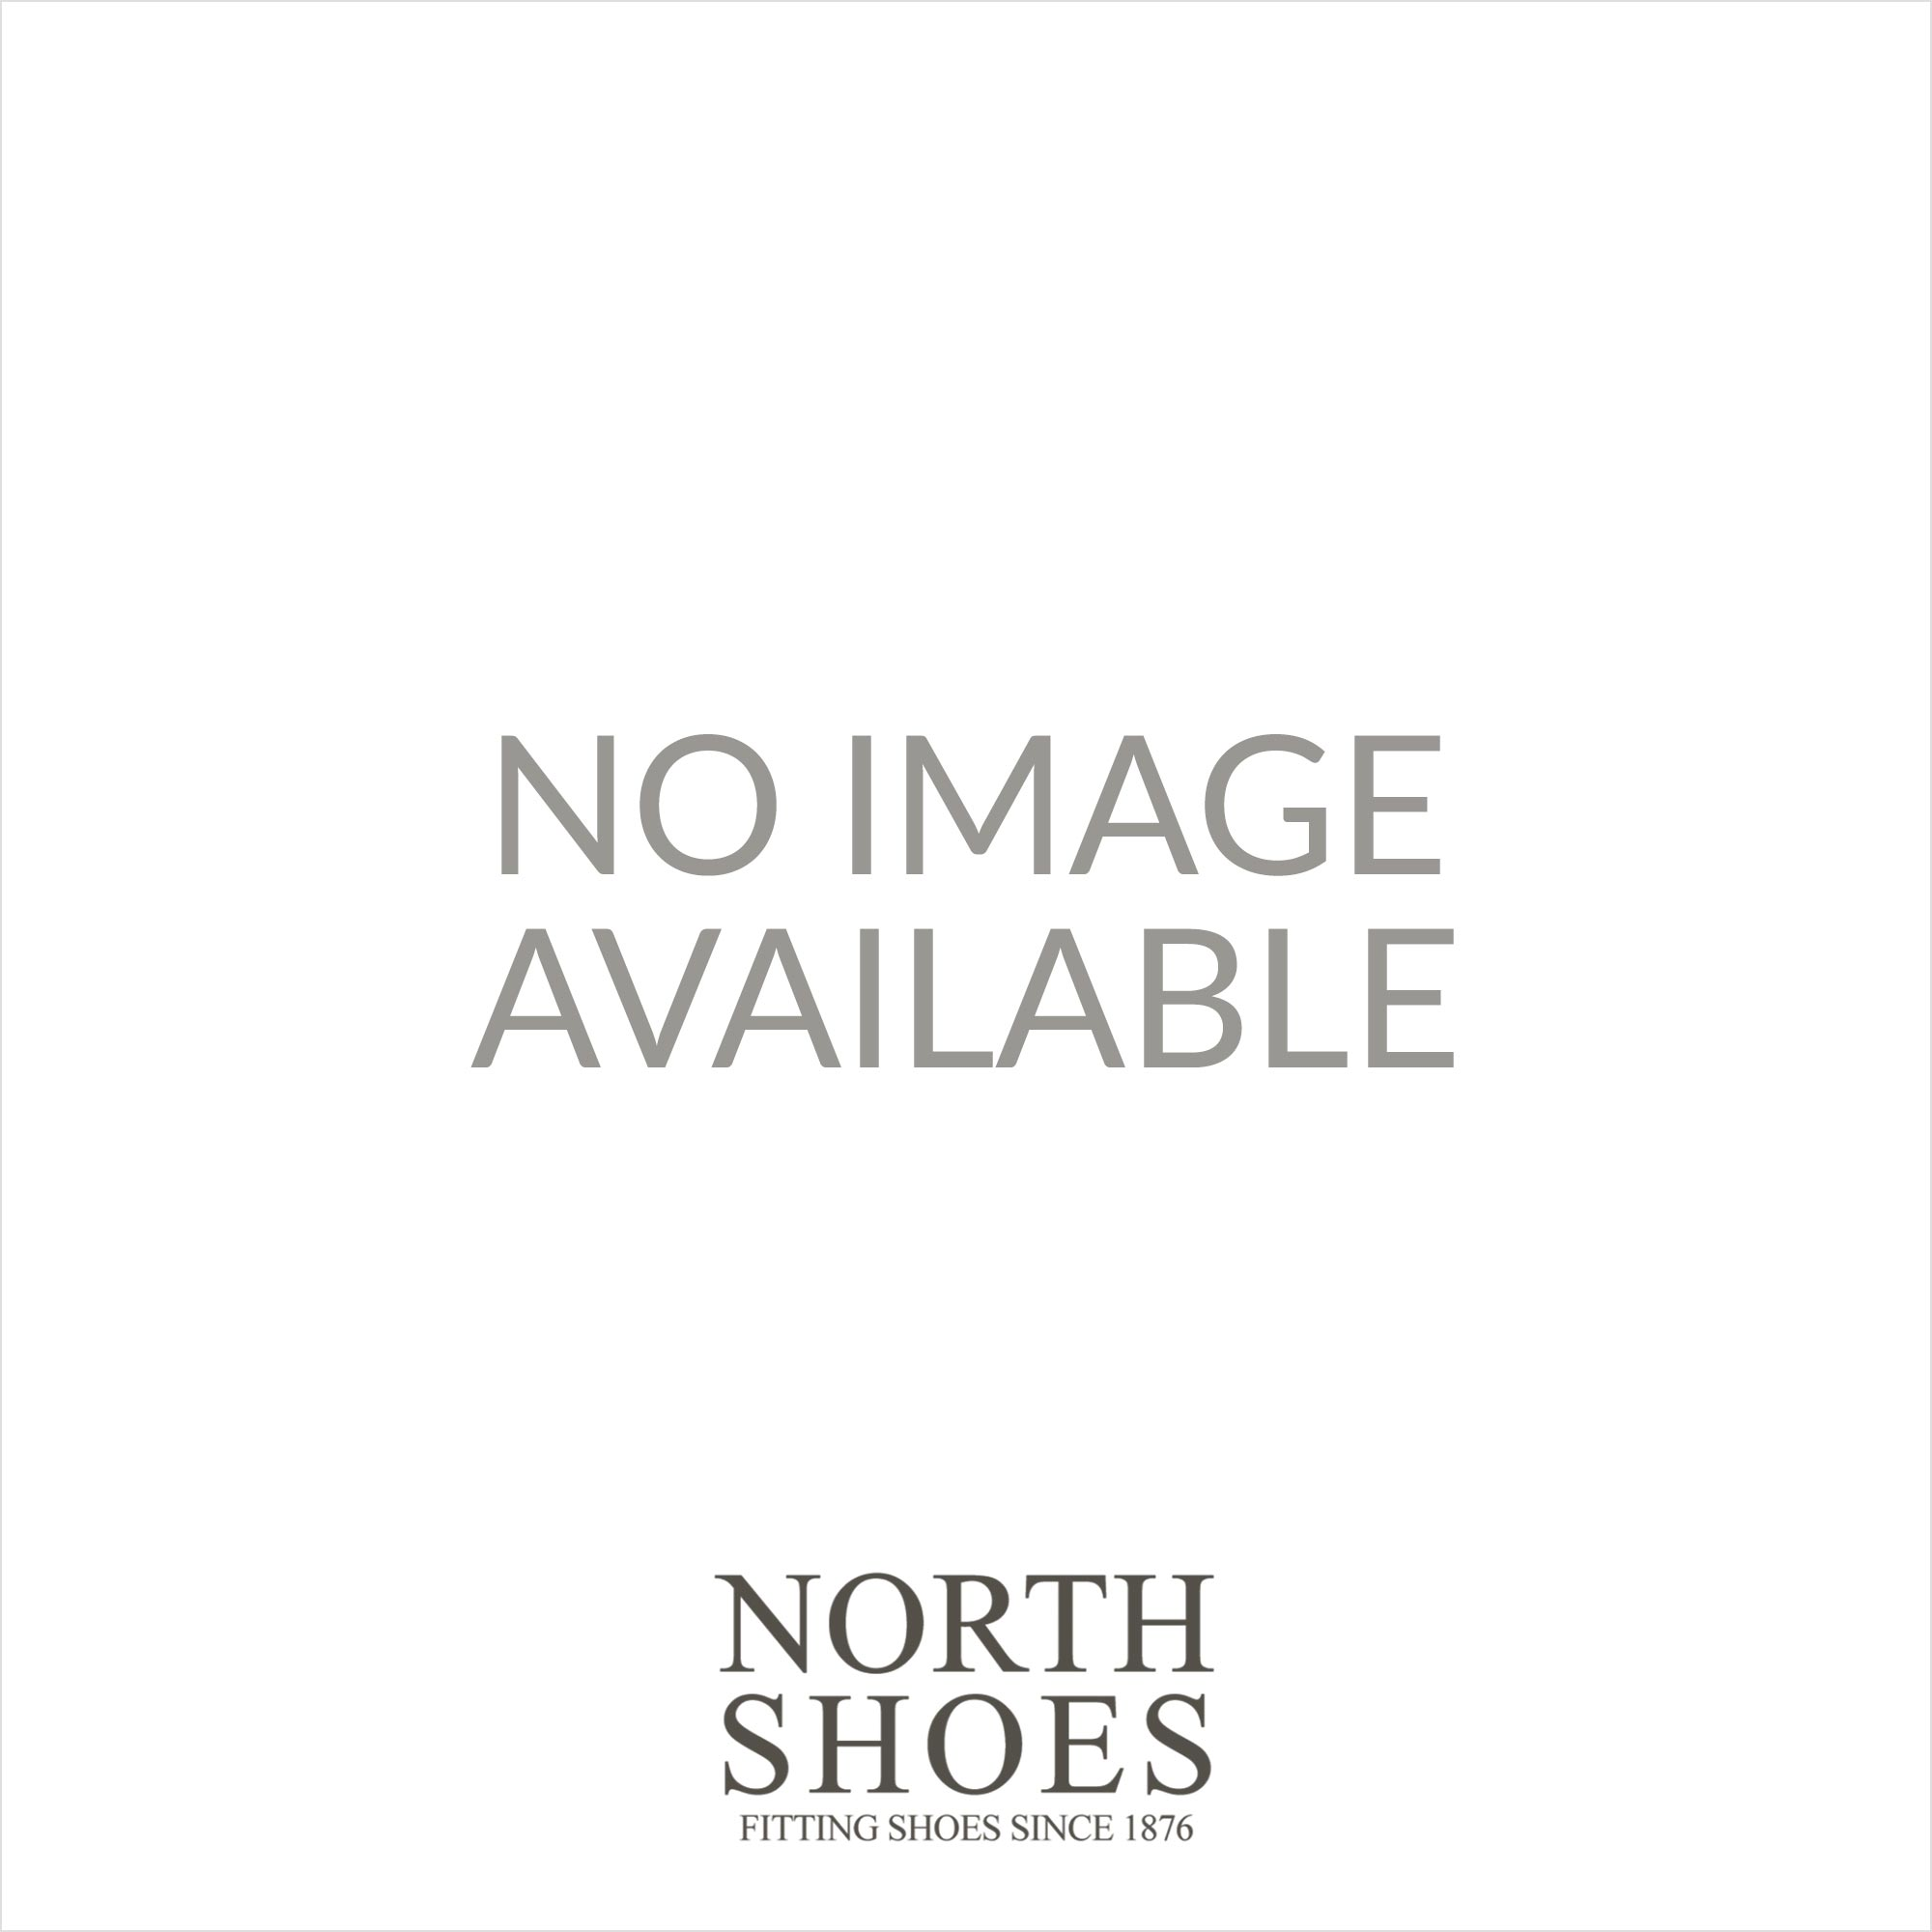 SKECHERS 64644 Brown Washed Canvas Mens Lace Up Casual Deck Shoe